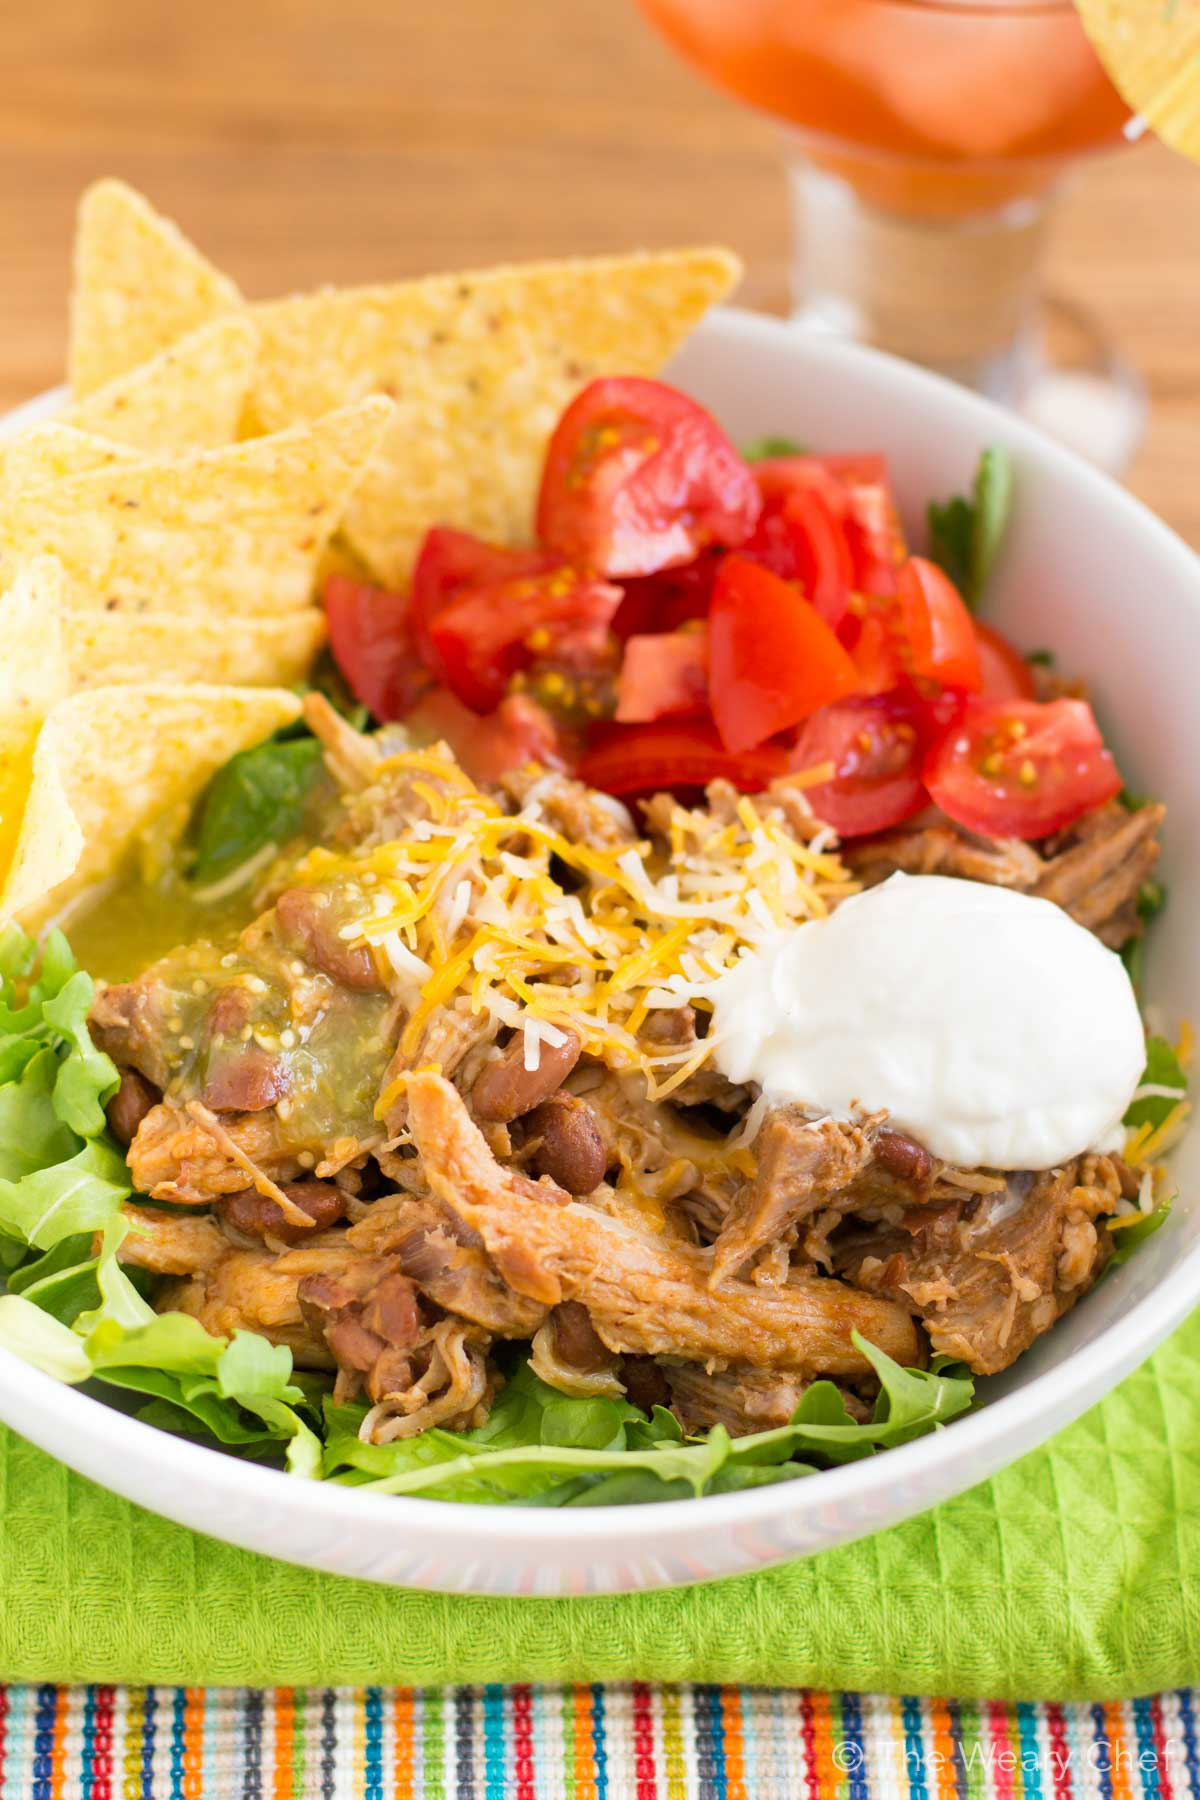 You'll adore these easy and flavorful crockpot pork roast burrito bowls!